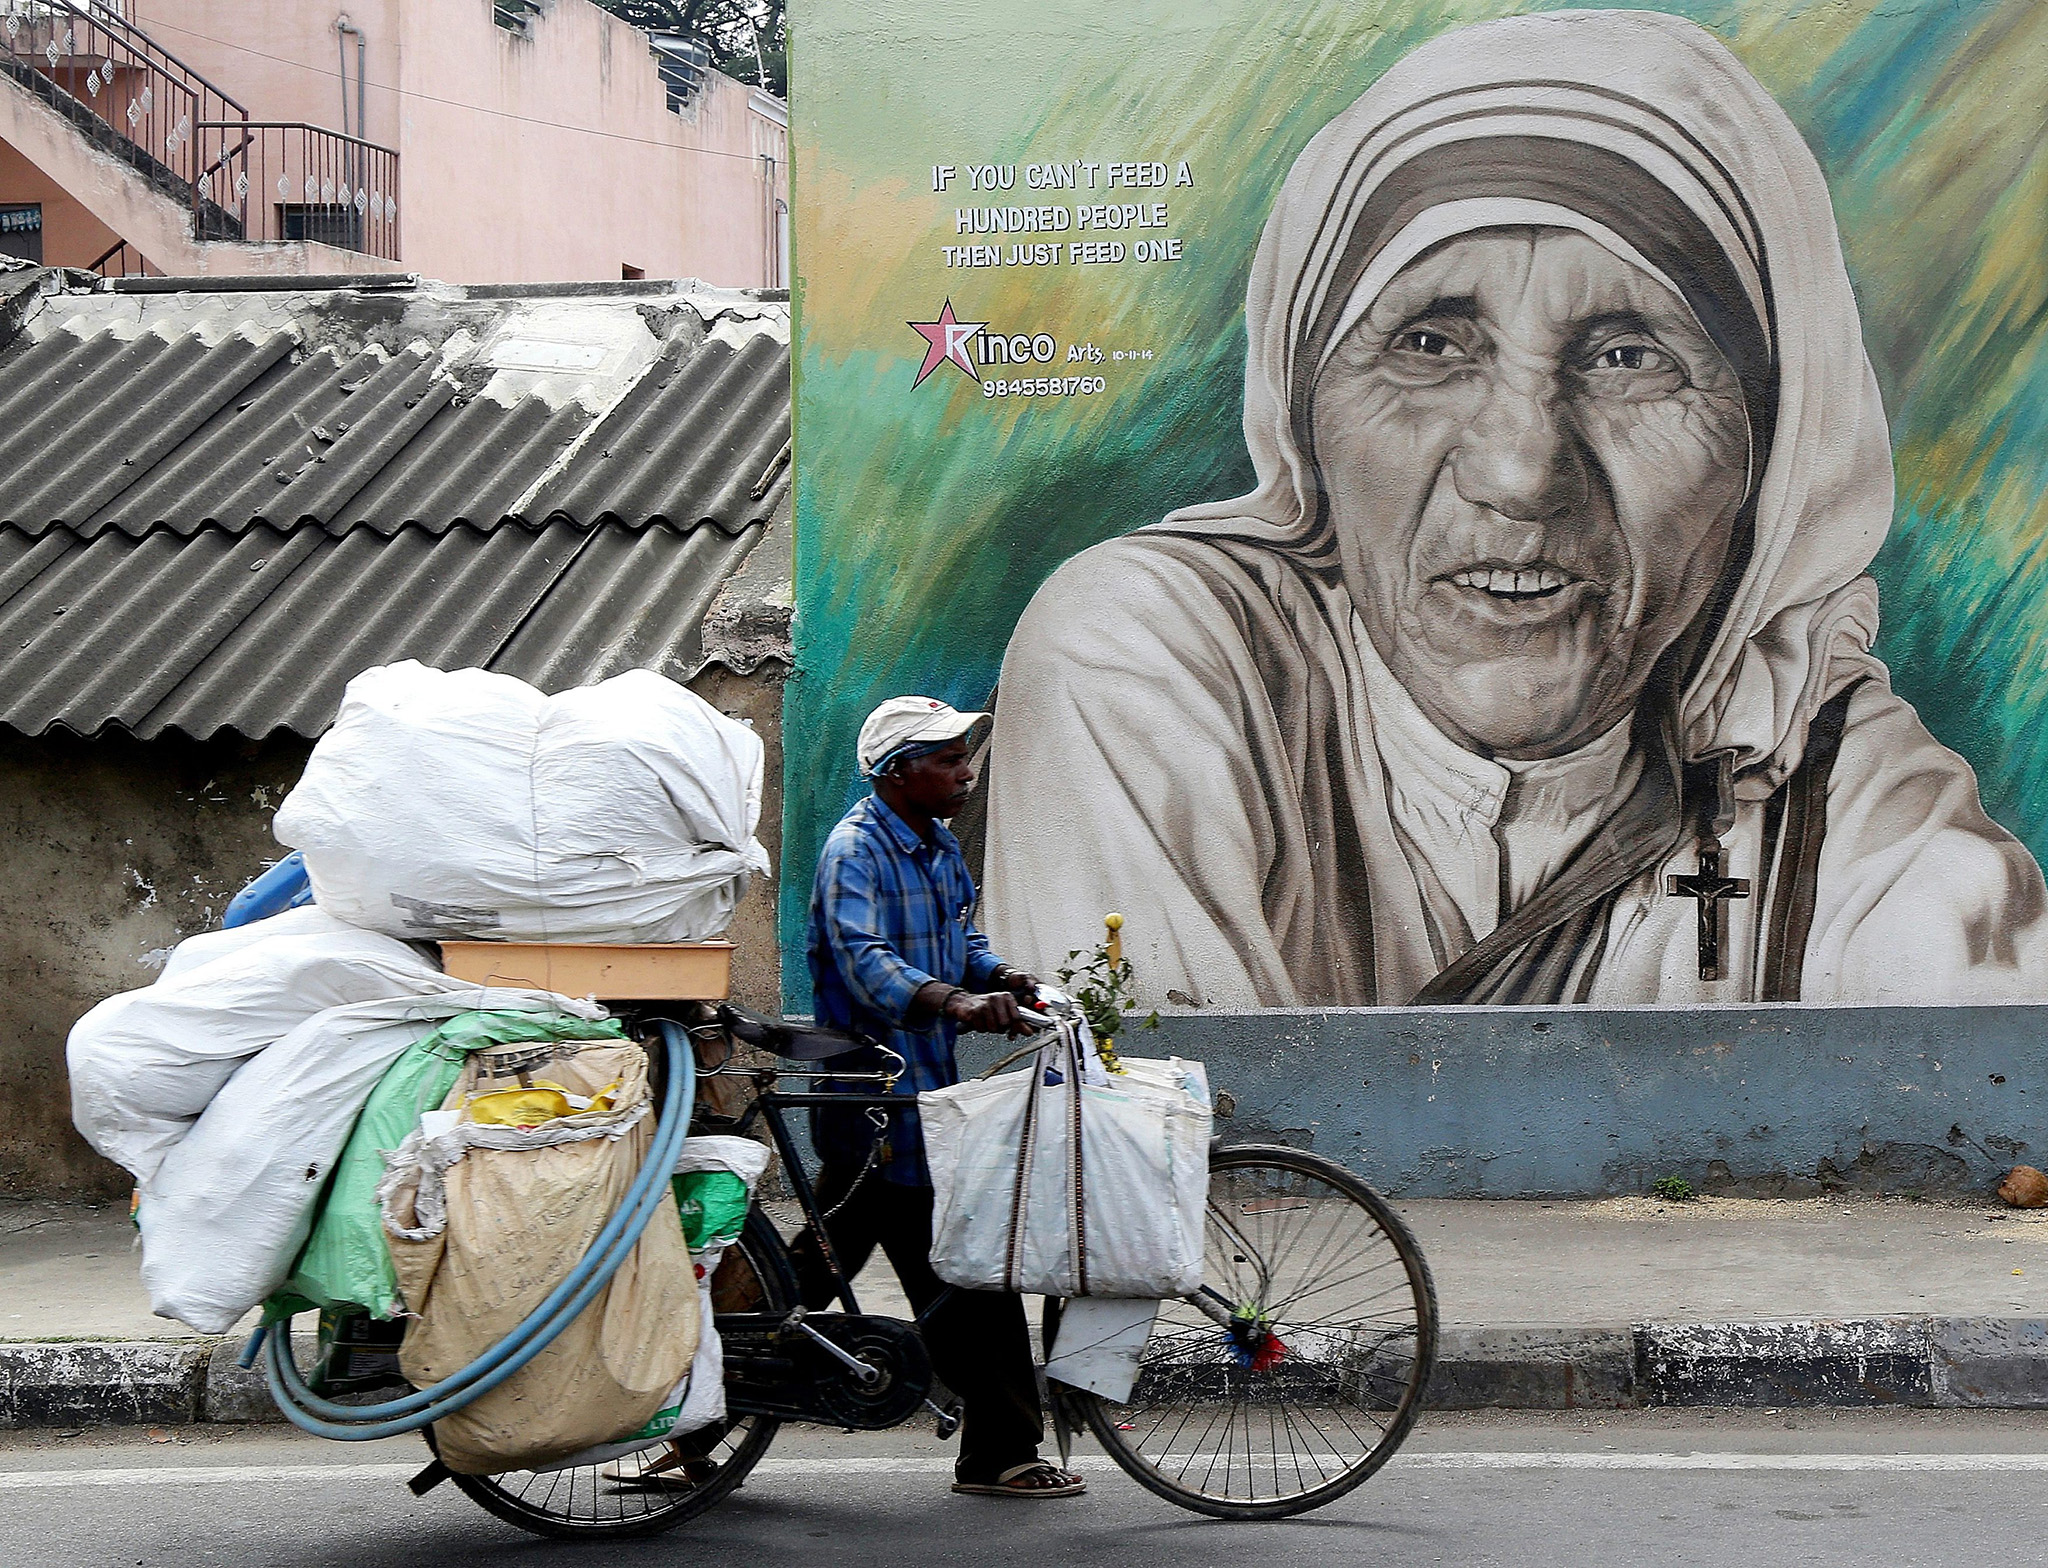 An Indian cyclist passes a mural depicting Catholic nun Mother Teresa, in Bangalore, India, 17 November 2016. Mother Teresa was born Agnes Gonxha Bojaxhiu on 26 August 1910 to Albanian parents in Skopje, Macedonia (FYROM) and died on 05 September 1997 in Calcutta, India. She began her missionary work with the poor in Calcutta in 1948, and won the Nobel Peace Prize in 1979. Following her death in 1997 she was beatified by Pope John Paul II and given the title Blessed Teresa of Calcutta.  EPA/JAGADEESH NV  EPA/JAGADEESH NV